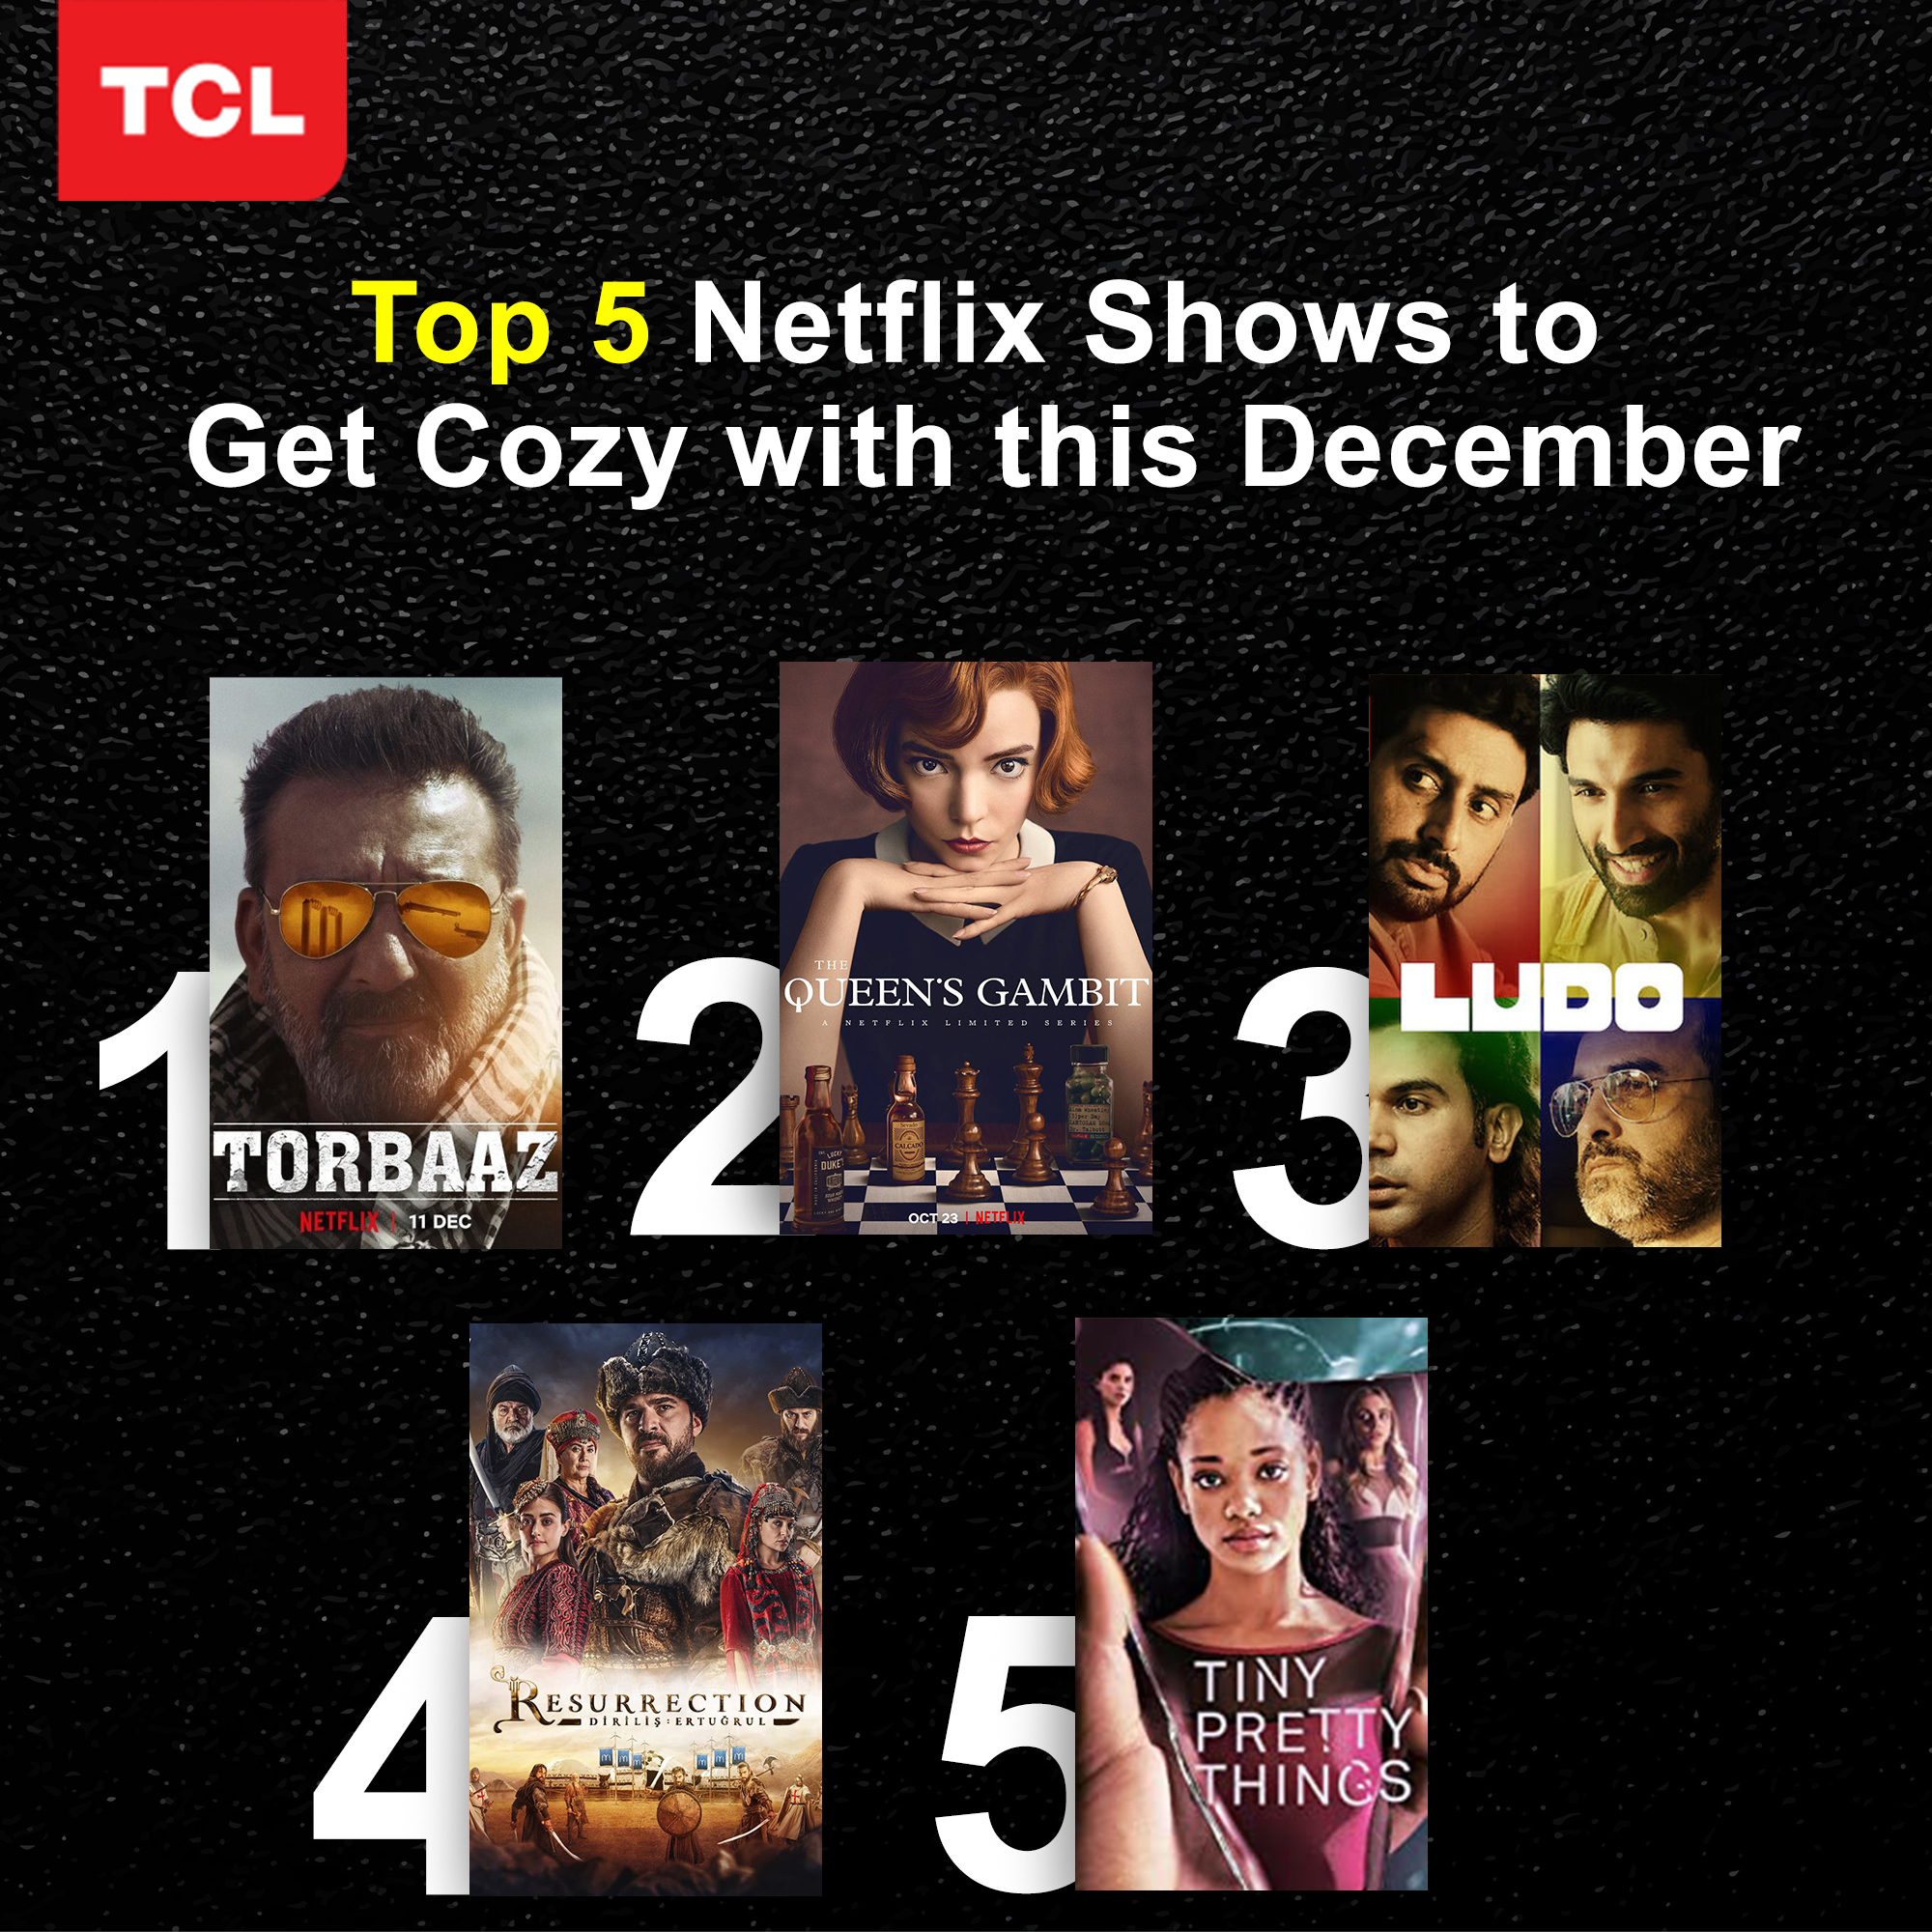 5 Netflix Shows to Get Cozy with This December